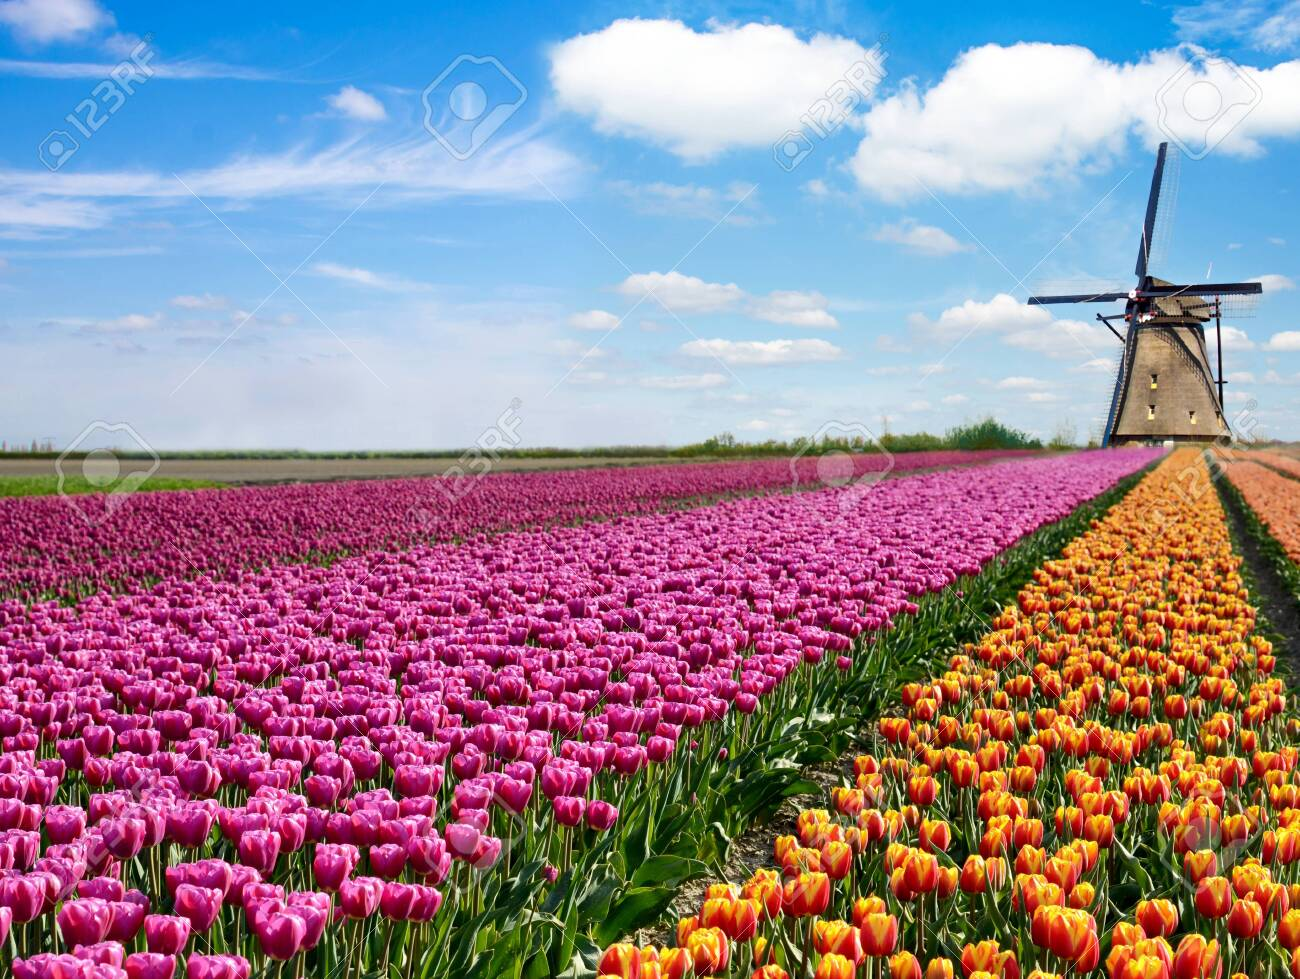 Beautiful magical spring landscape with a tulip field and windmills in the background of a cloudy sky in Holland. Charming places. - 139247071